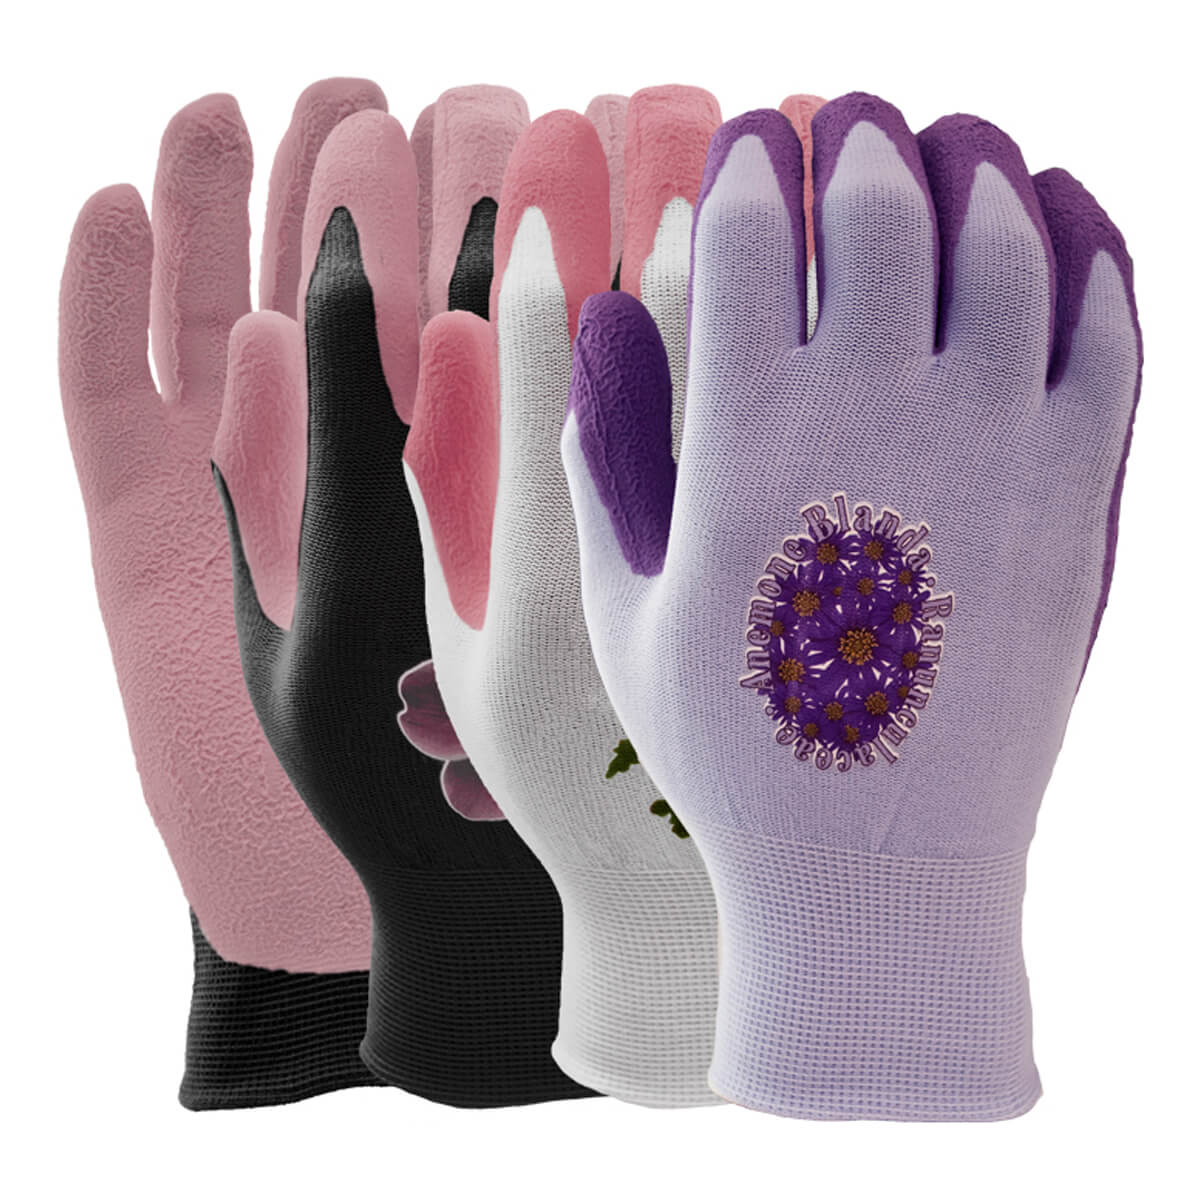 Botanical D-Lites Gloves - S